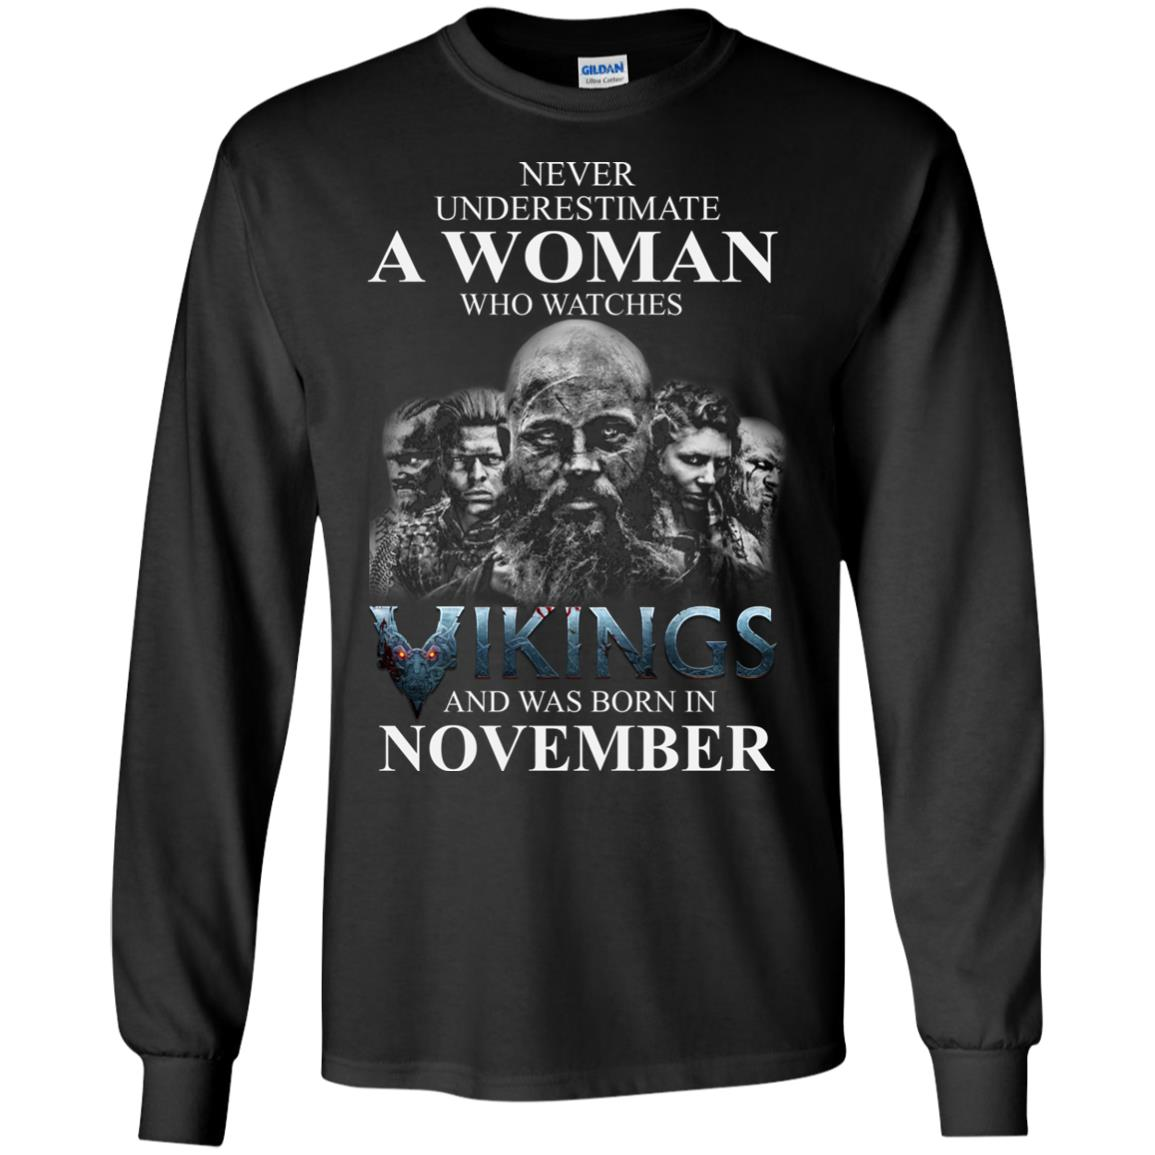 image 1233 - Never Underestimate A woman who watches Vikings and was born in November shirt